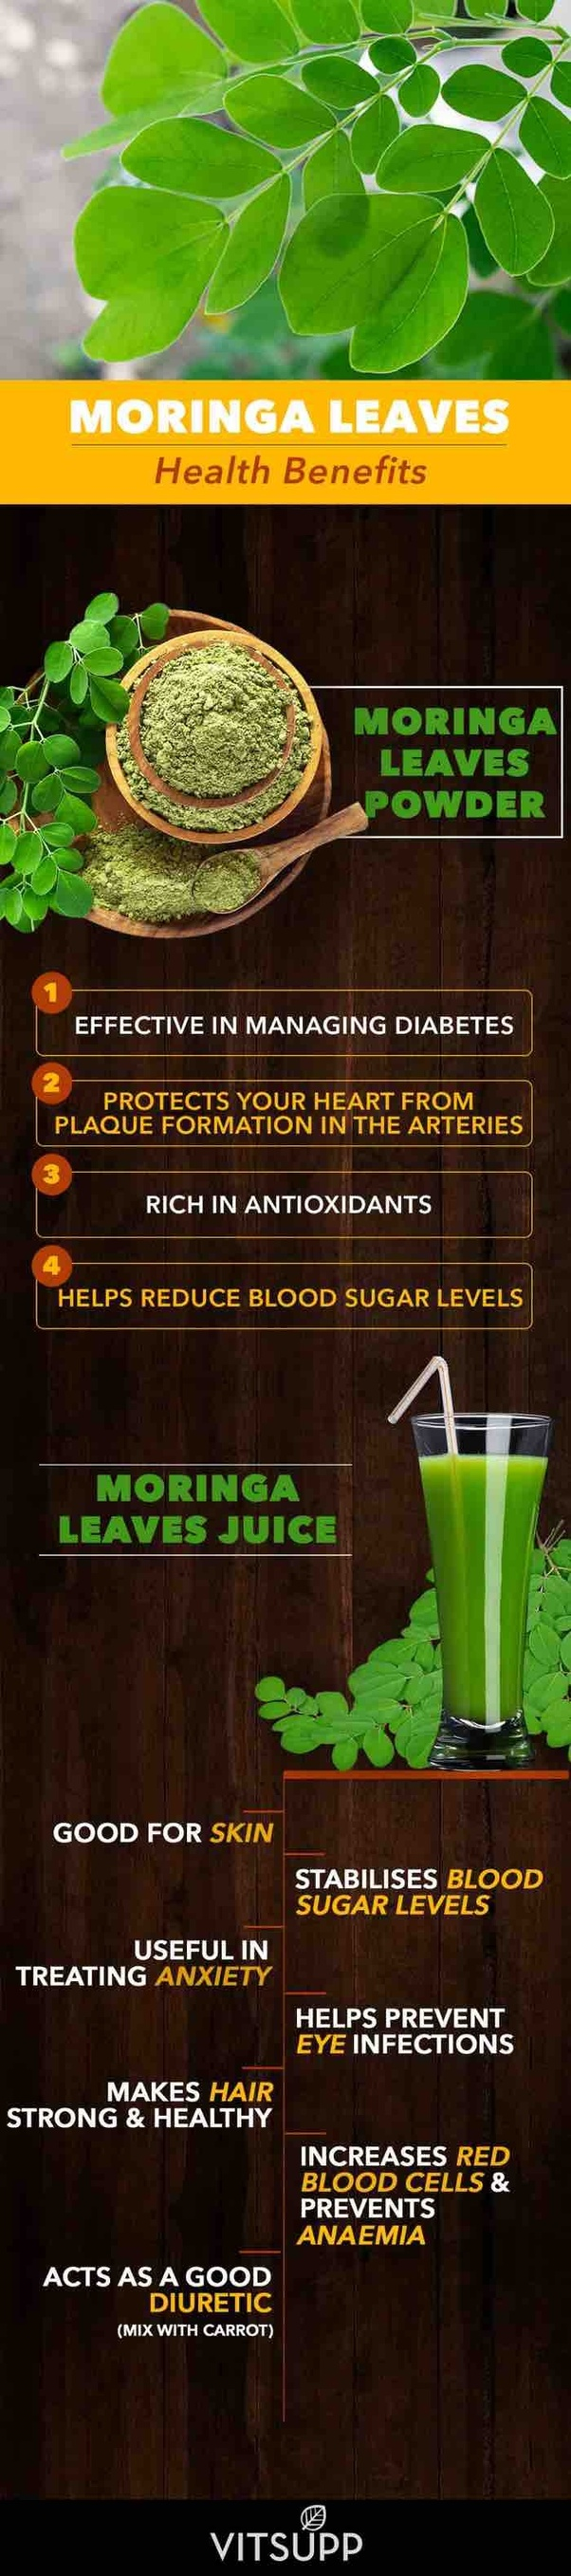 What is moringa and why do people call it a miracle tree